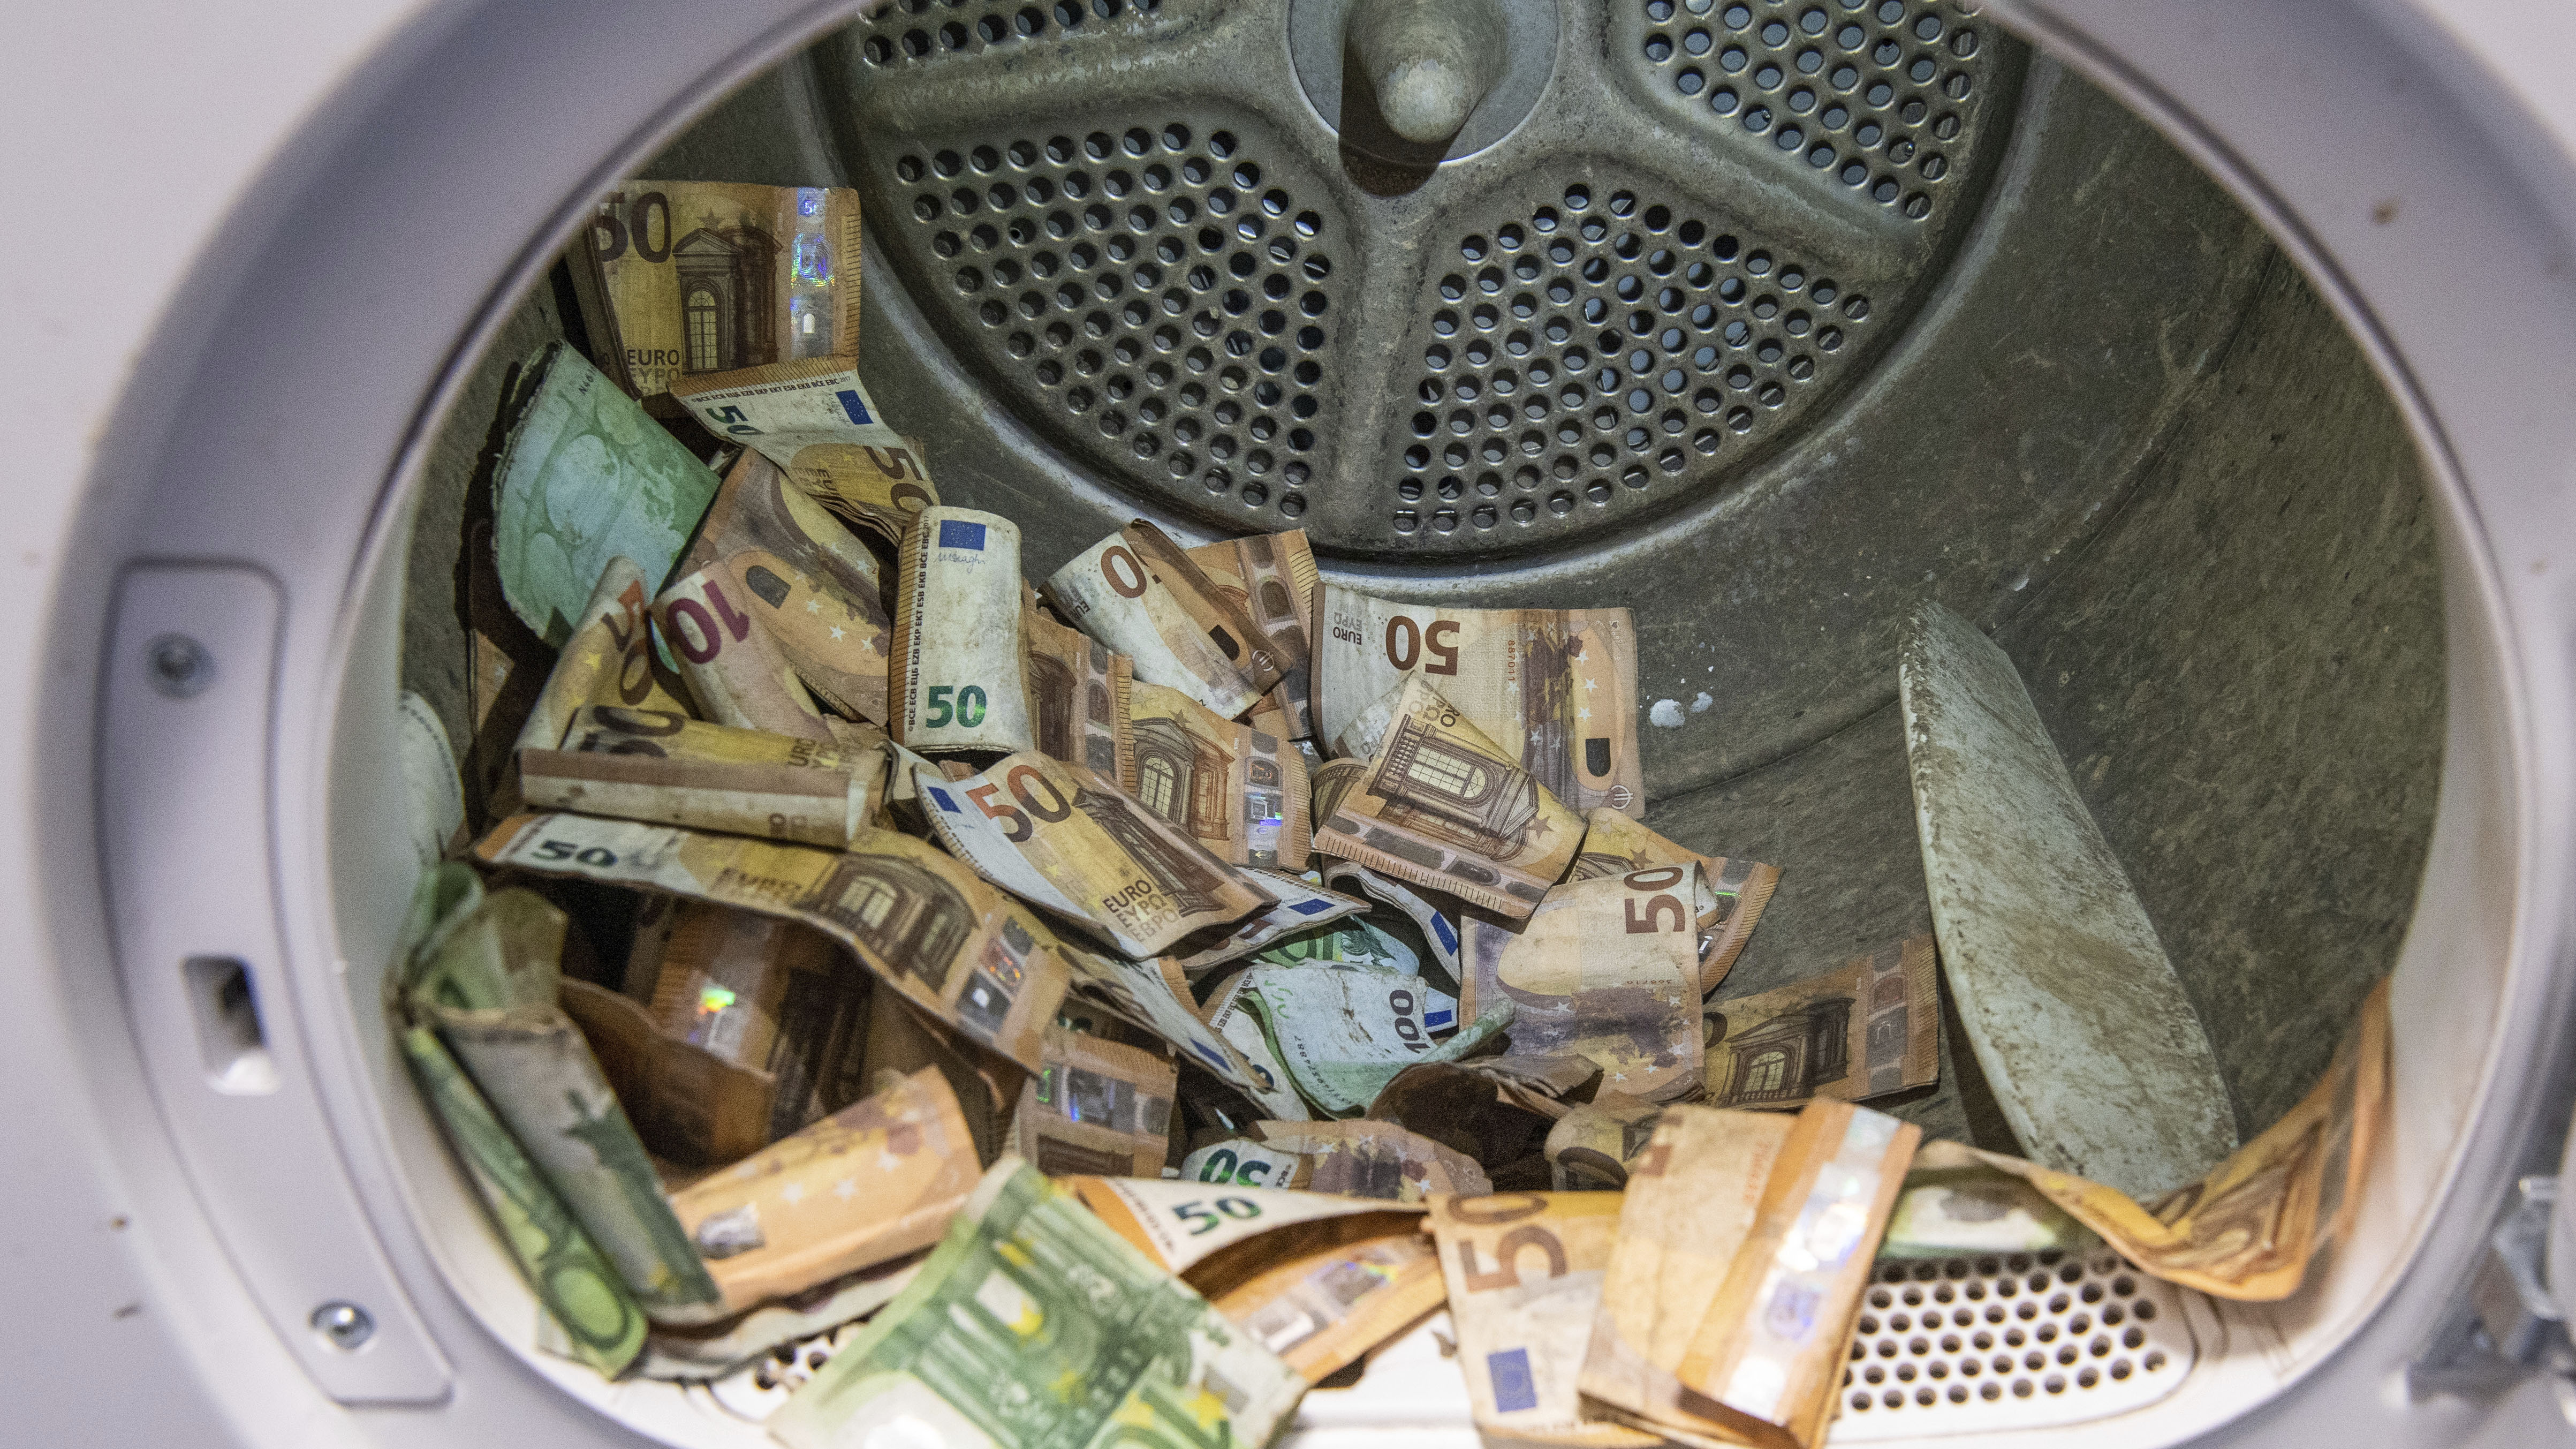 Euro banknotes damaged in the flood disaster were dried in a standard tumble dryer at the Bundesbank.